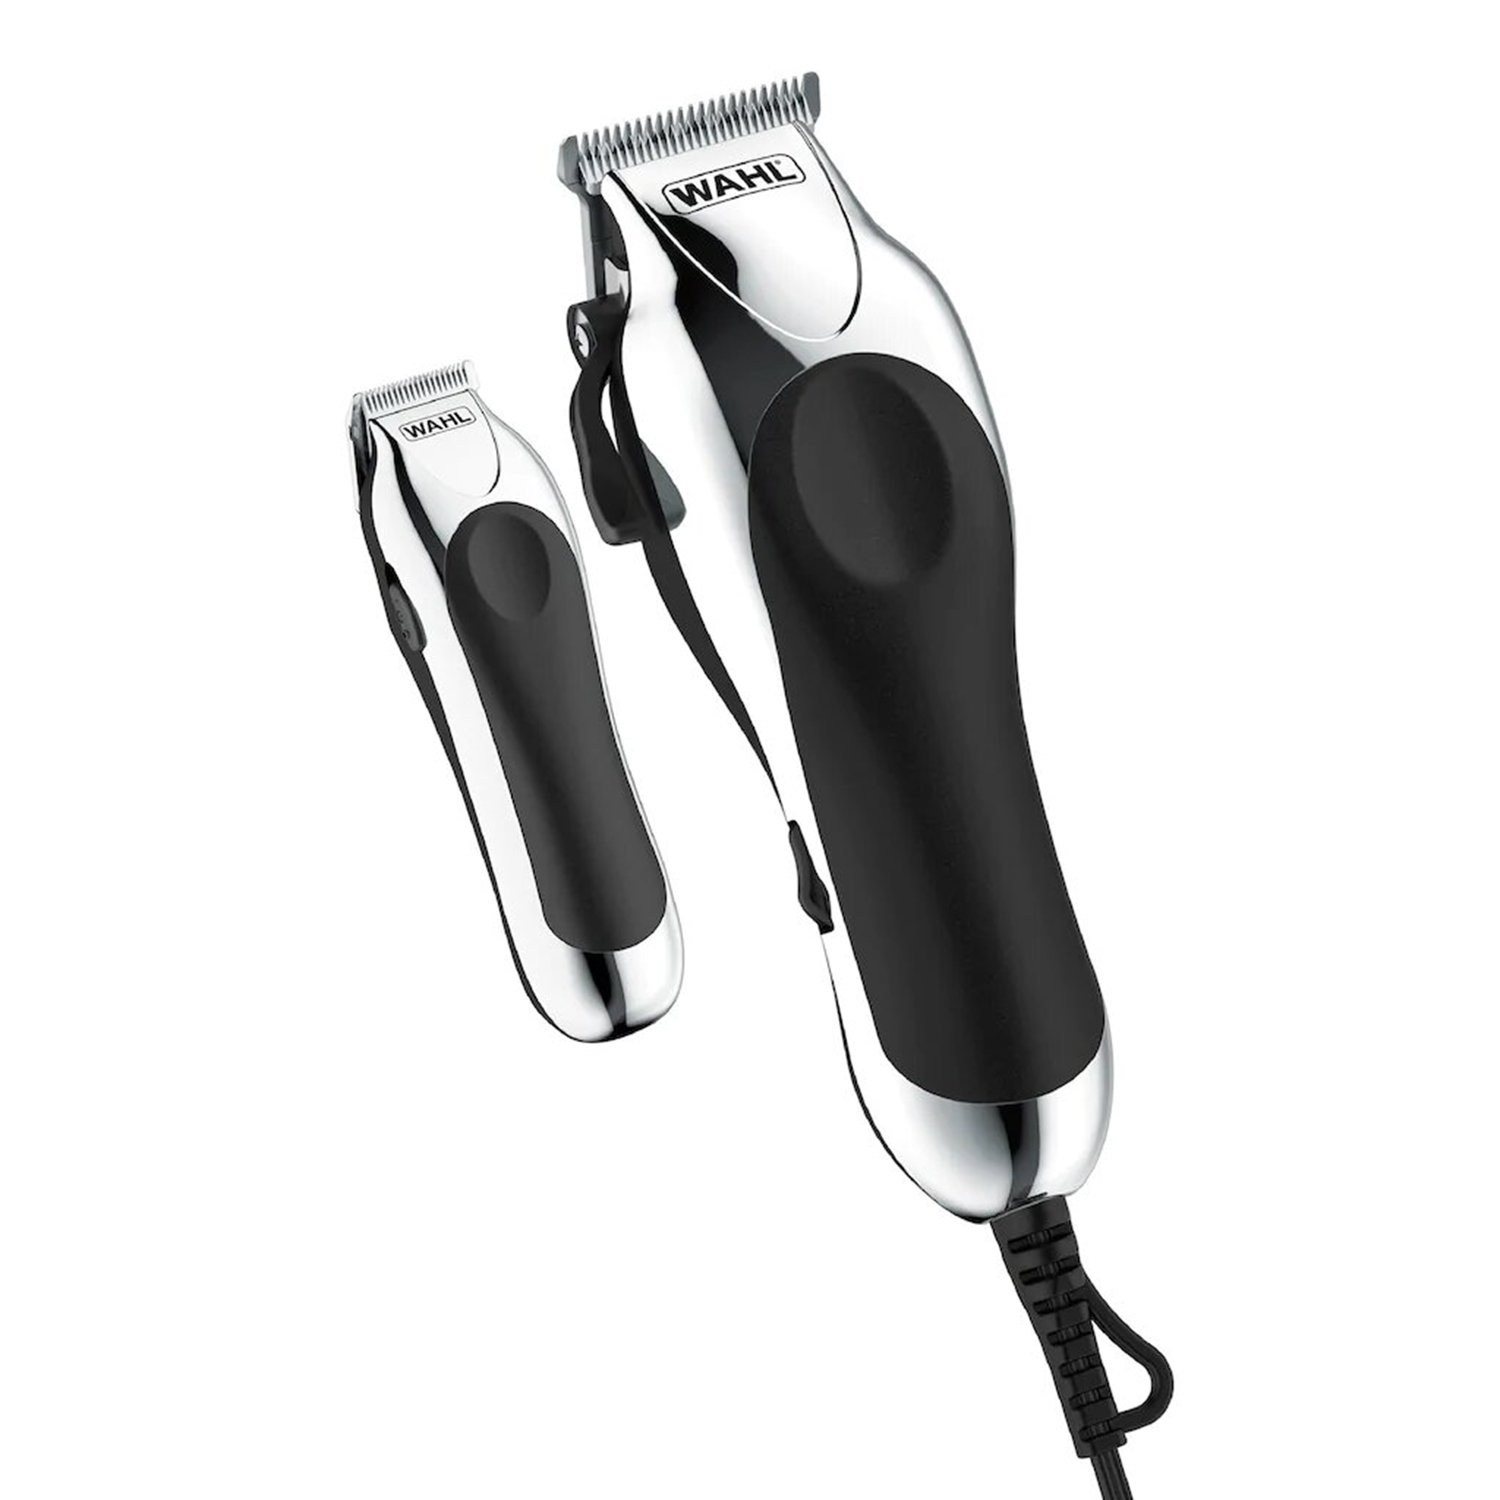 Wahl Deluxe Chrome Pro Complete Hair Cutting & Touch Up Kit